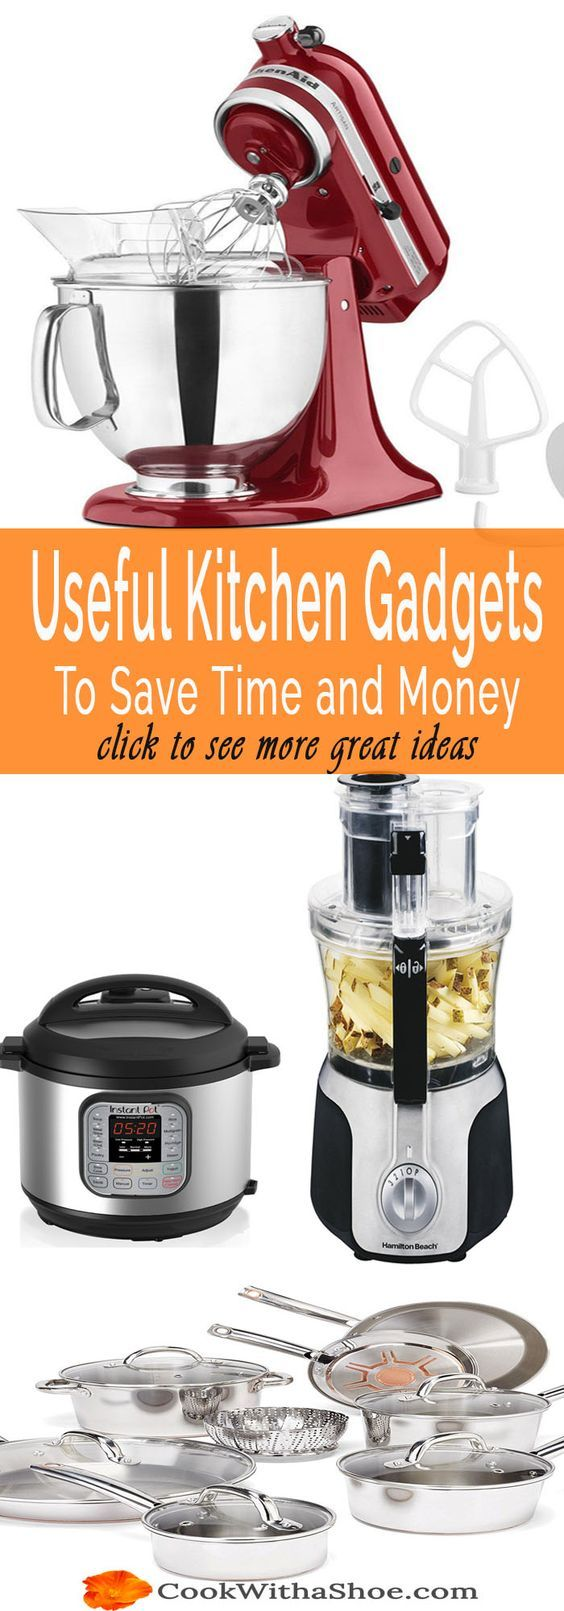 Uncategorized Best Kitchen Appliances To Have must have kitchen appliances datalog us best for the home cook have